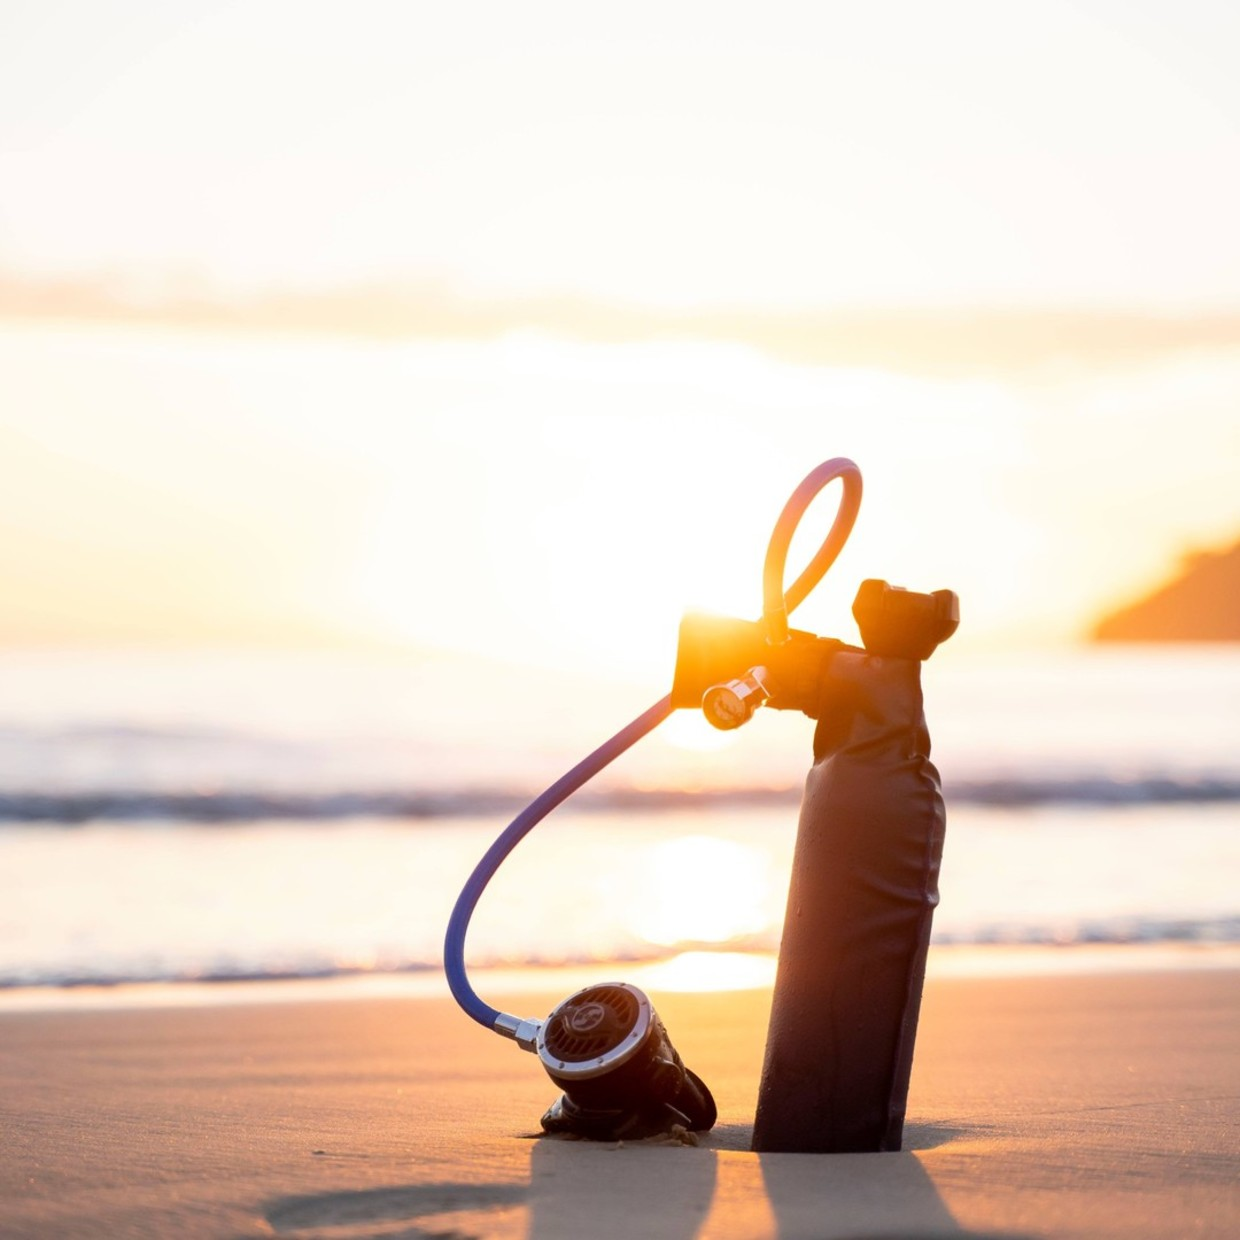 Take advantage of the last days of promotion on our site to buy your MiniDive equipment 😁 www.minidive.com